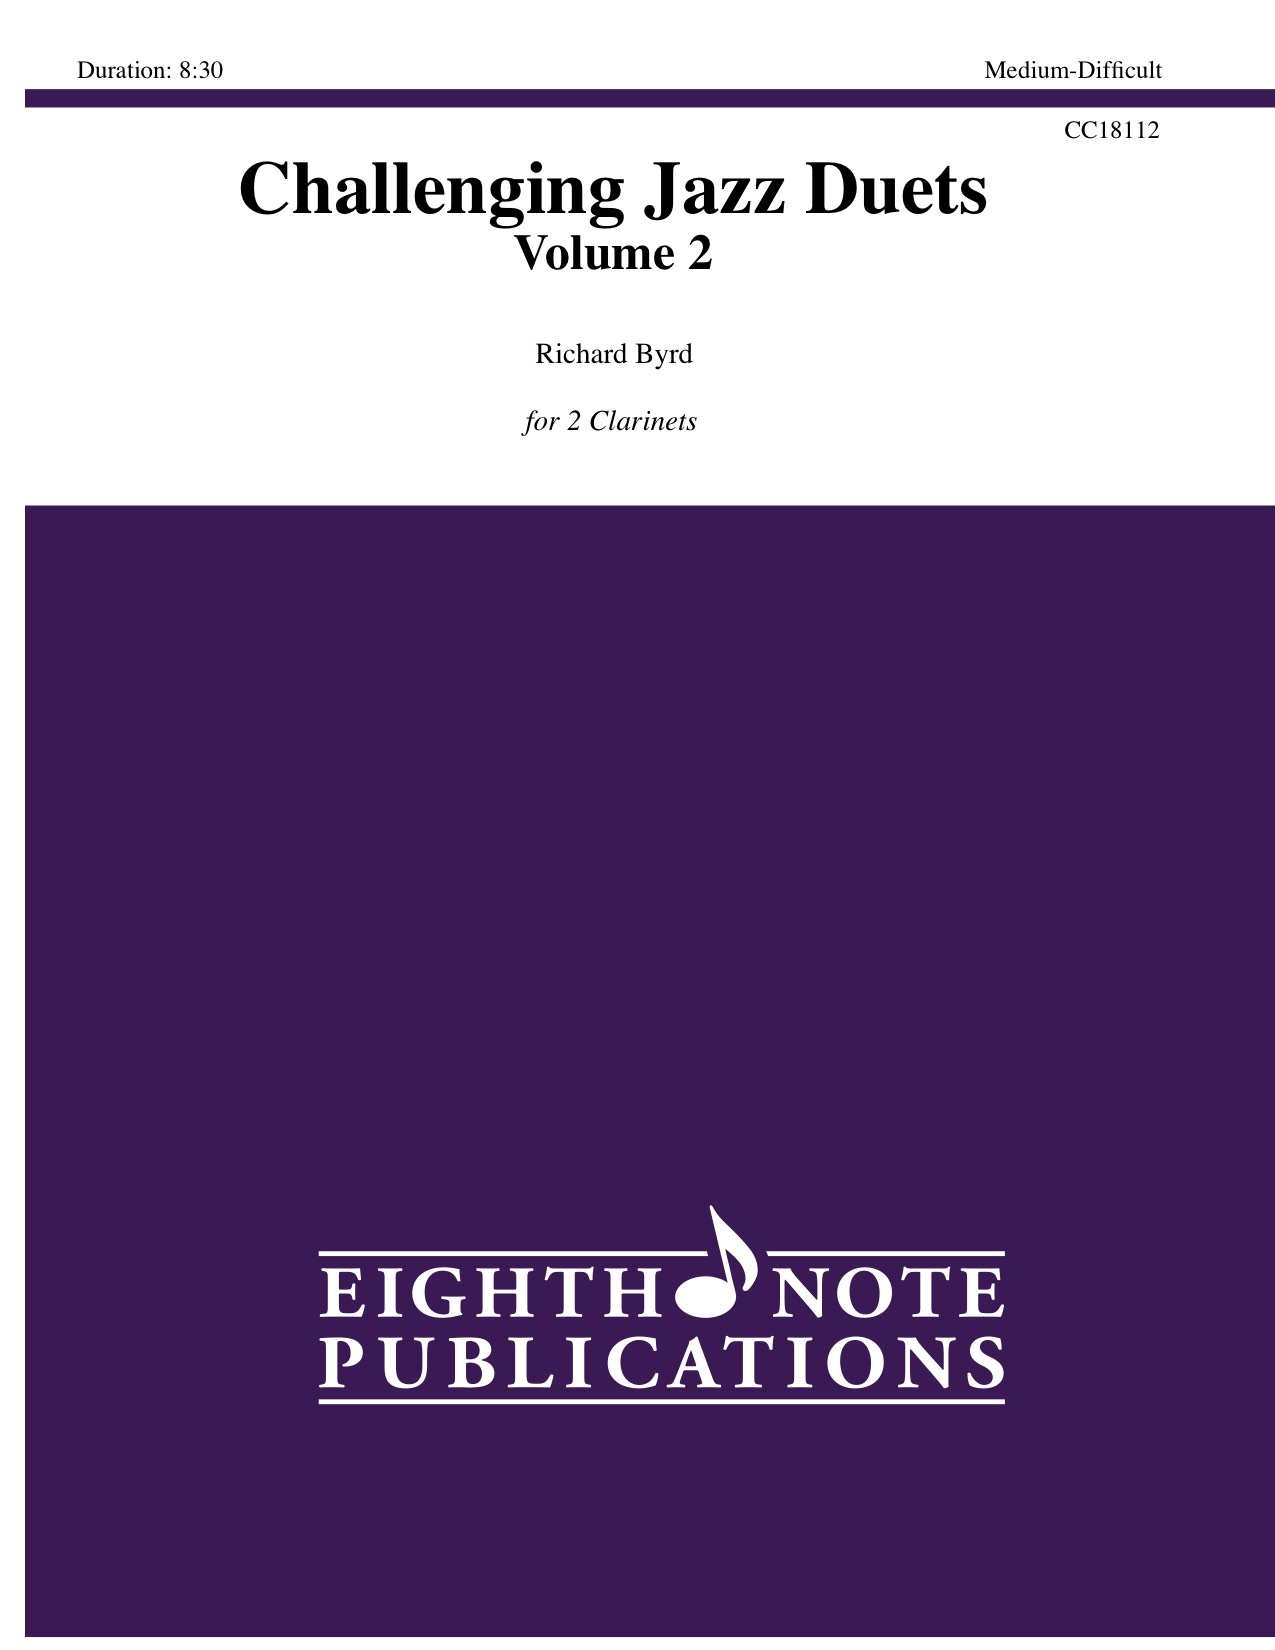 Challenging Jazz Duets Volume 2 - William Byrd